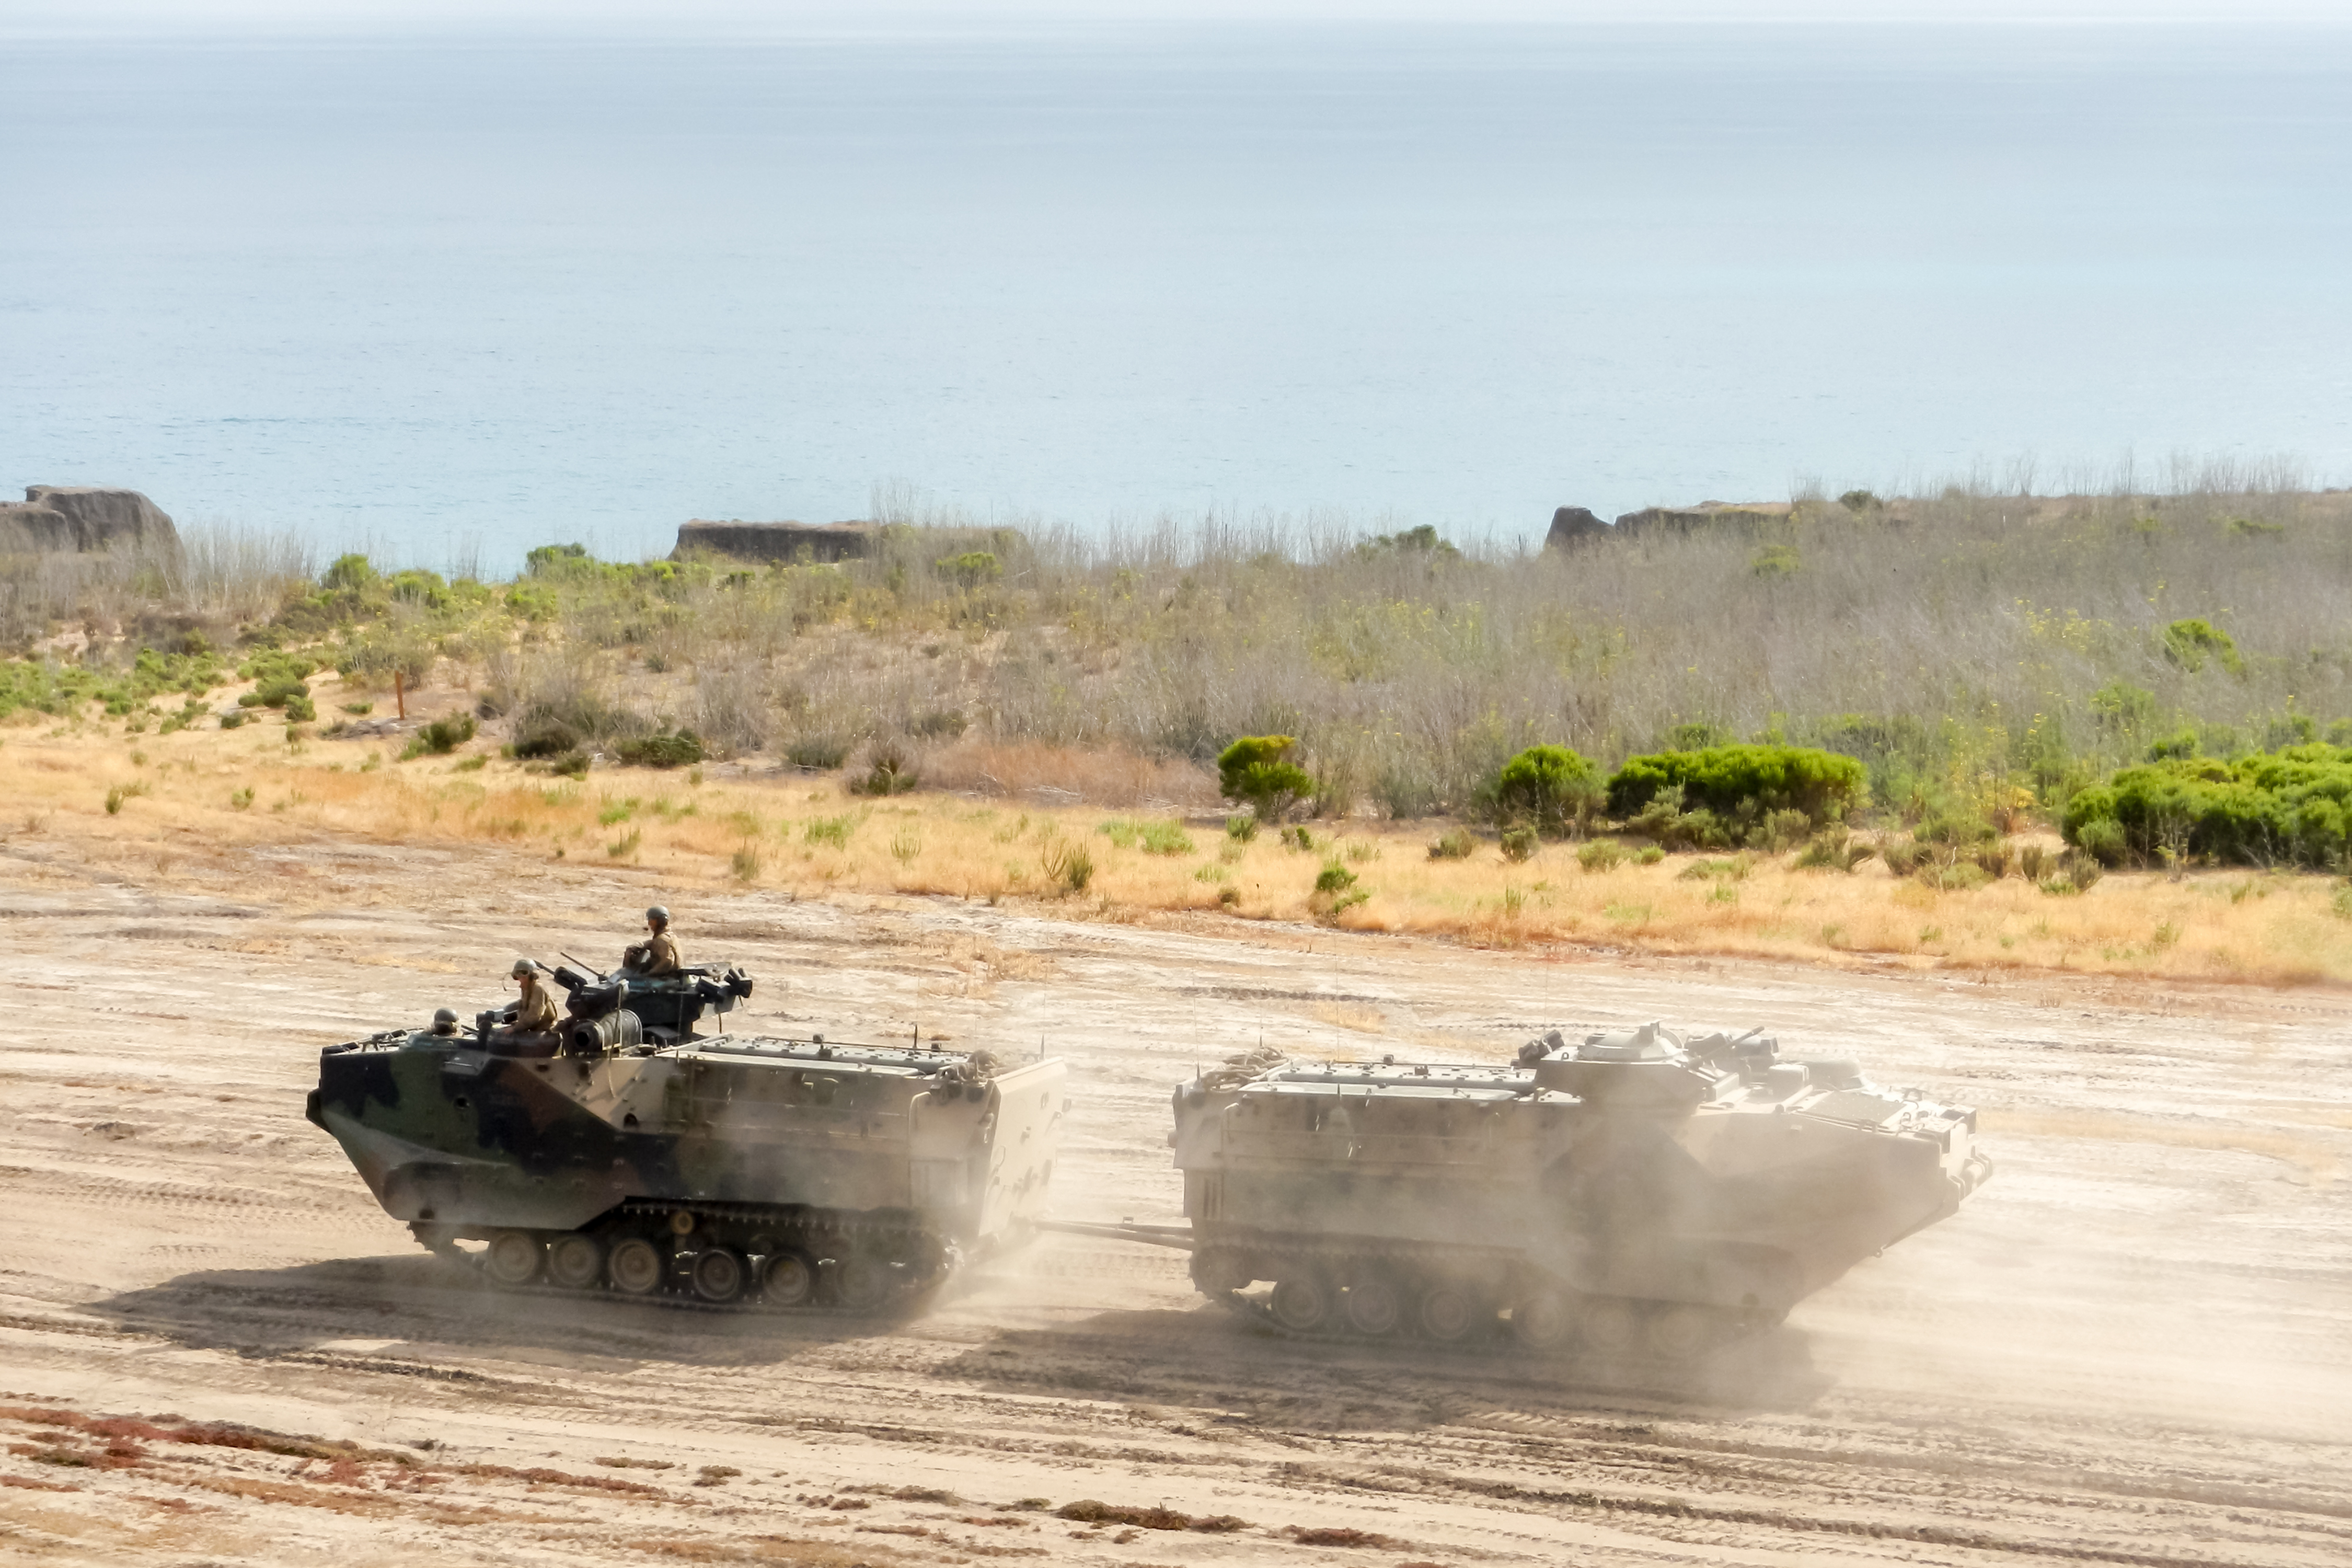 Military Vehicles in the desert, representing contract jobs in the Middle East